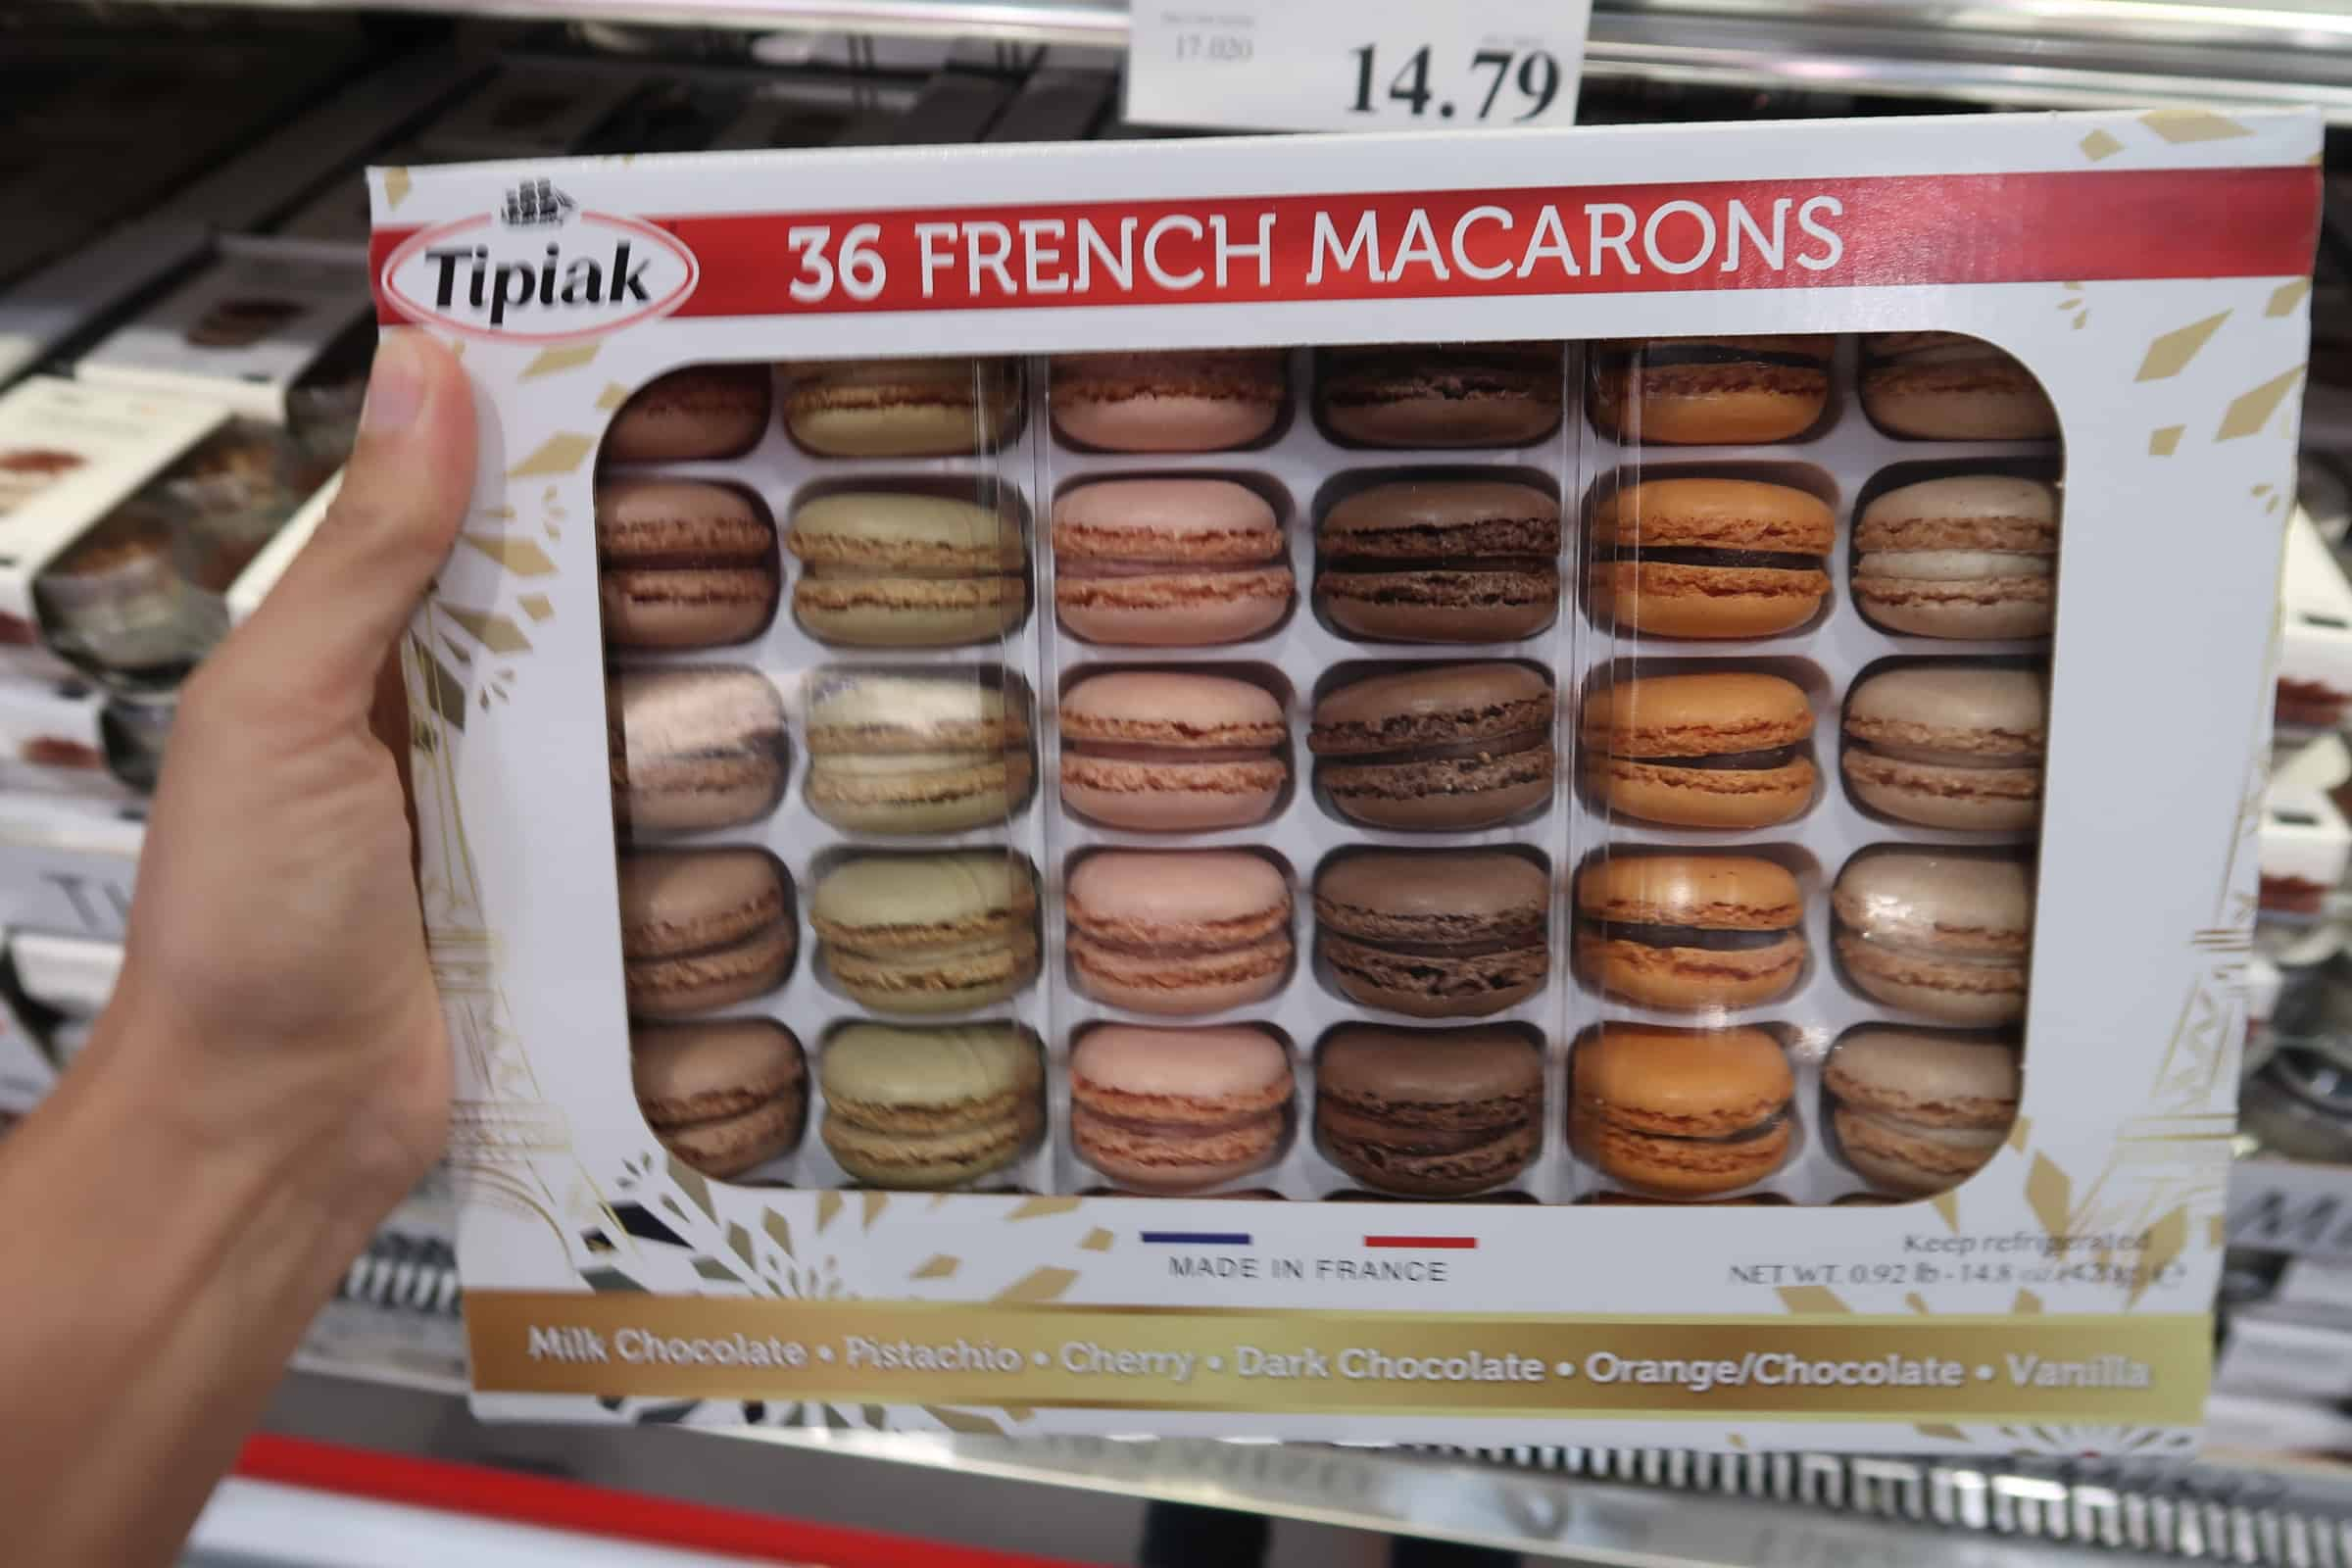 Get Fancy & Grab French Macarons at Costco